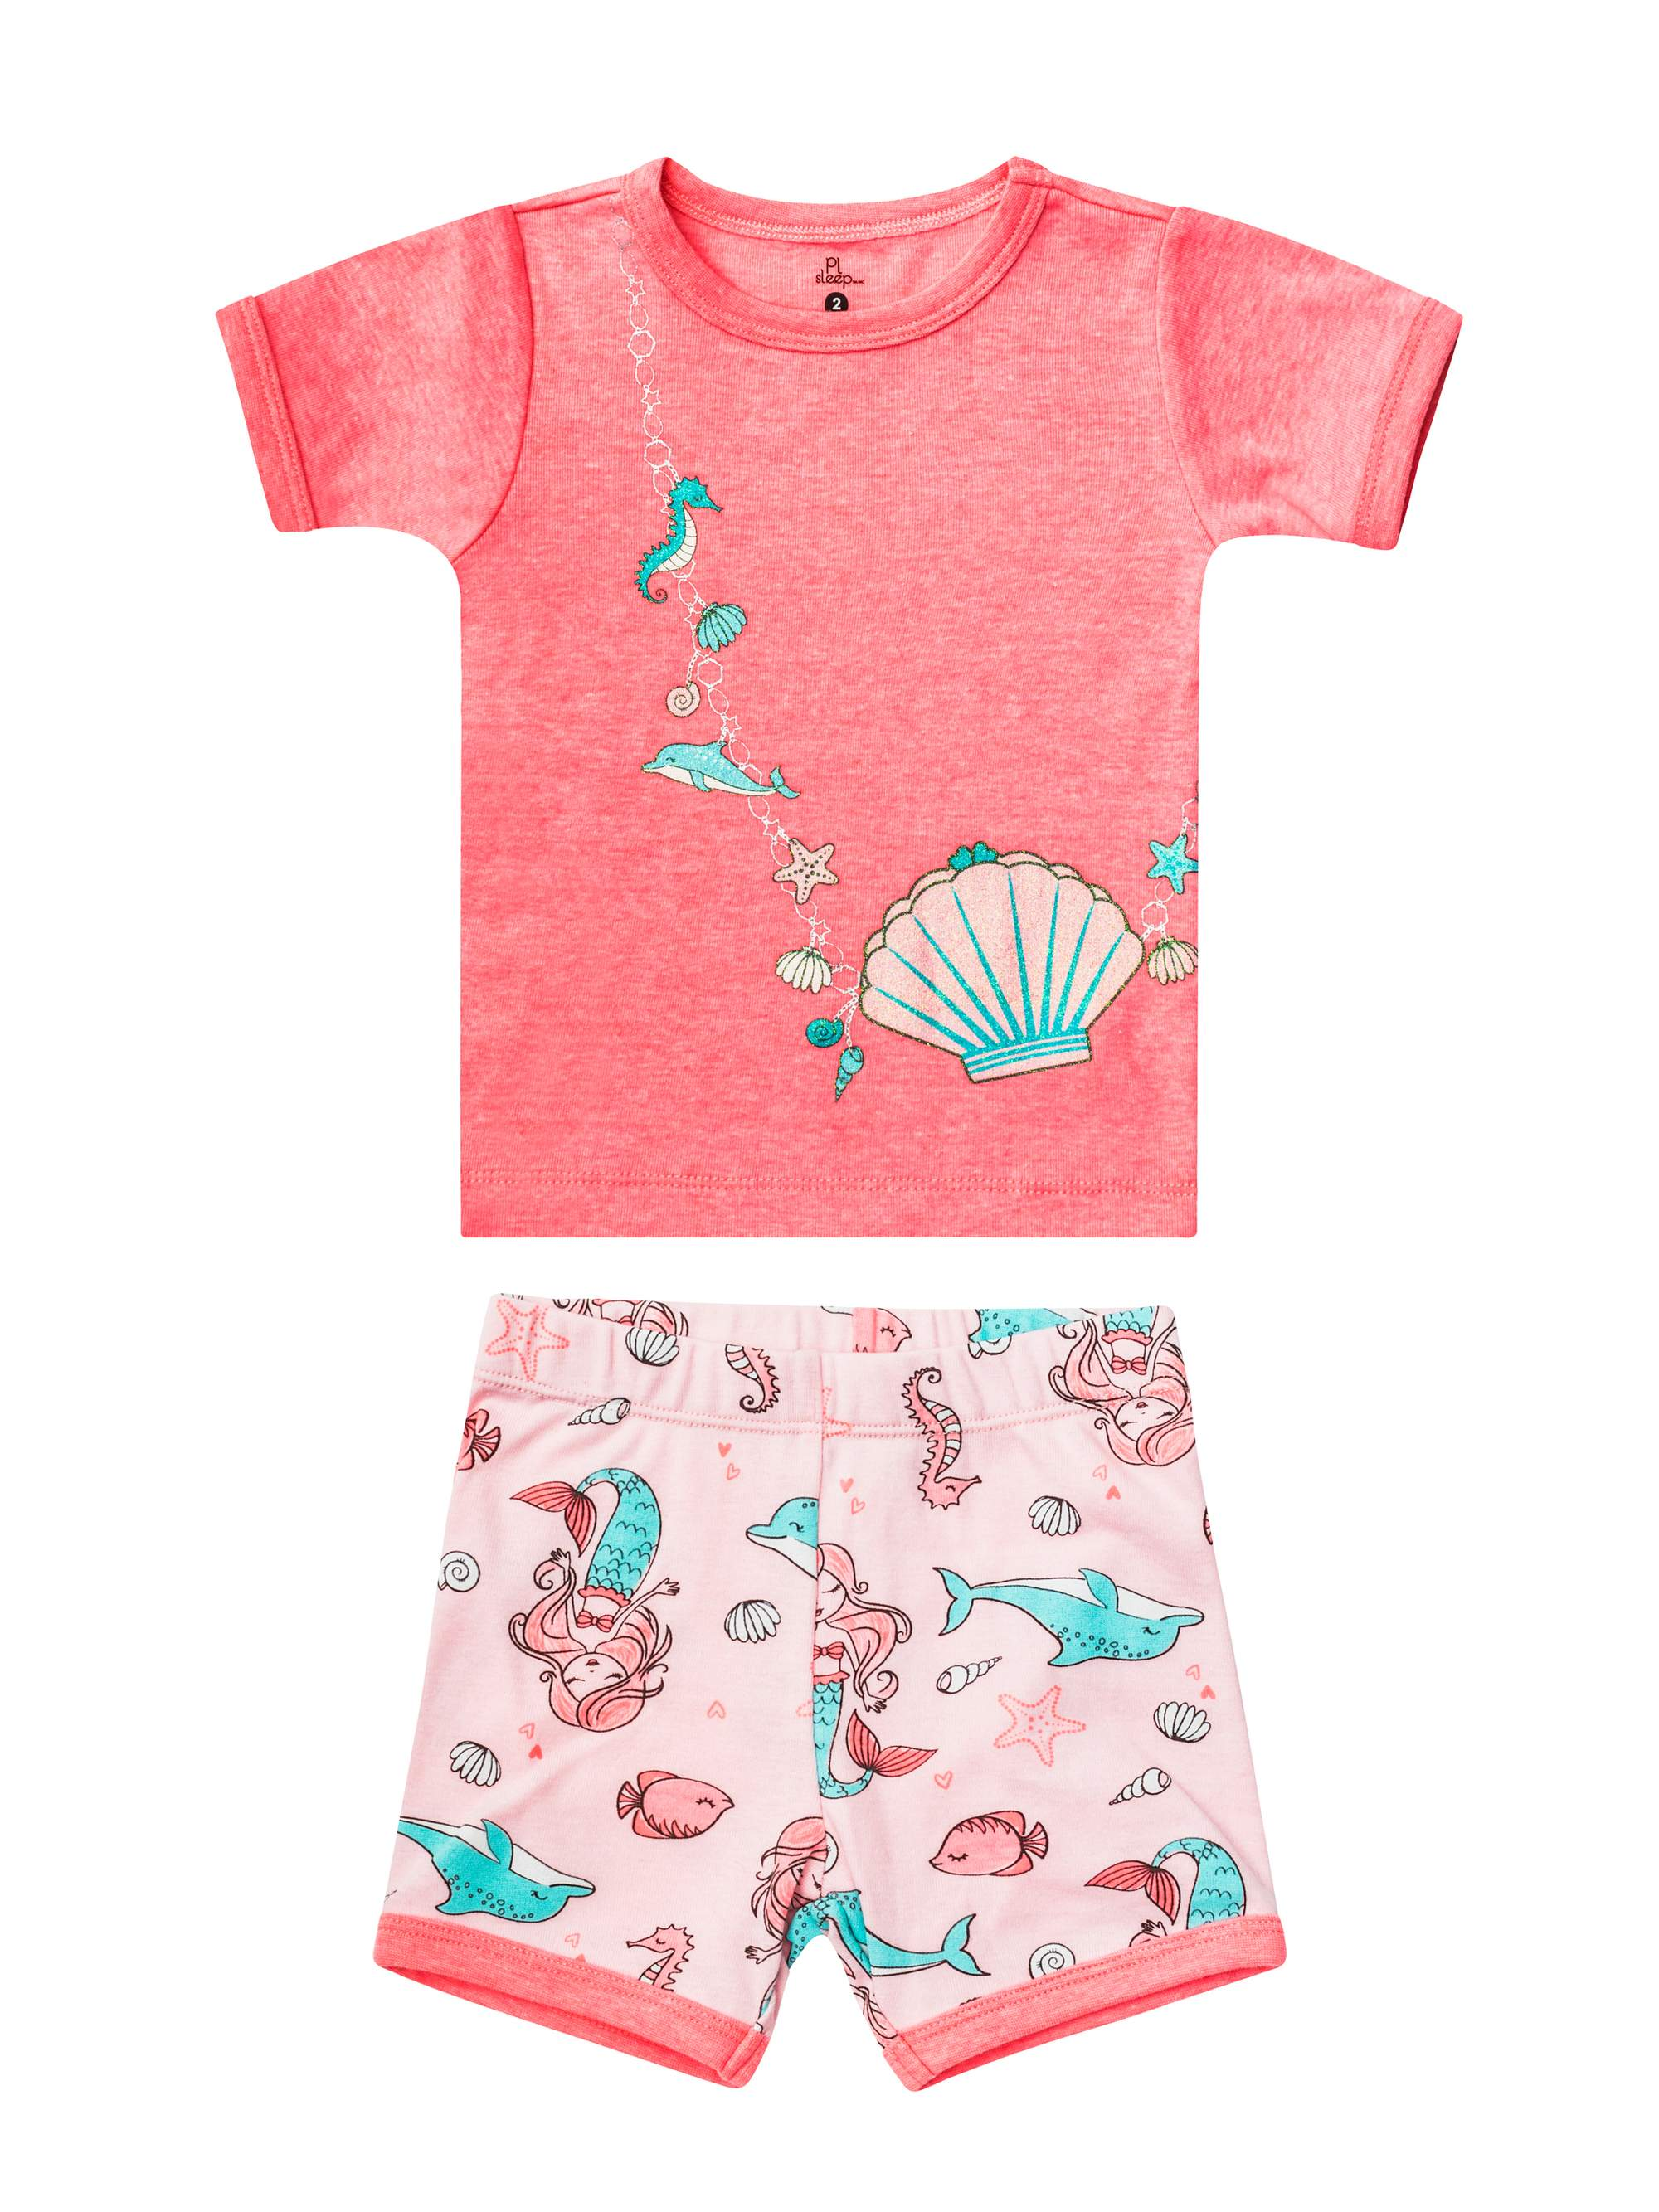 Top & Shorts, 2pc Pajama Set (Toddler Girls)